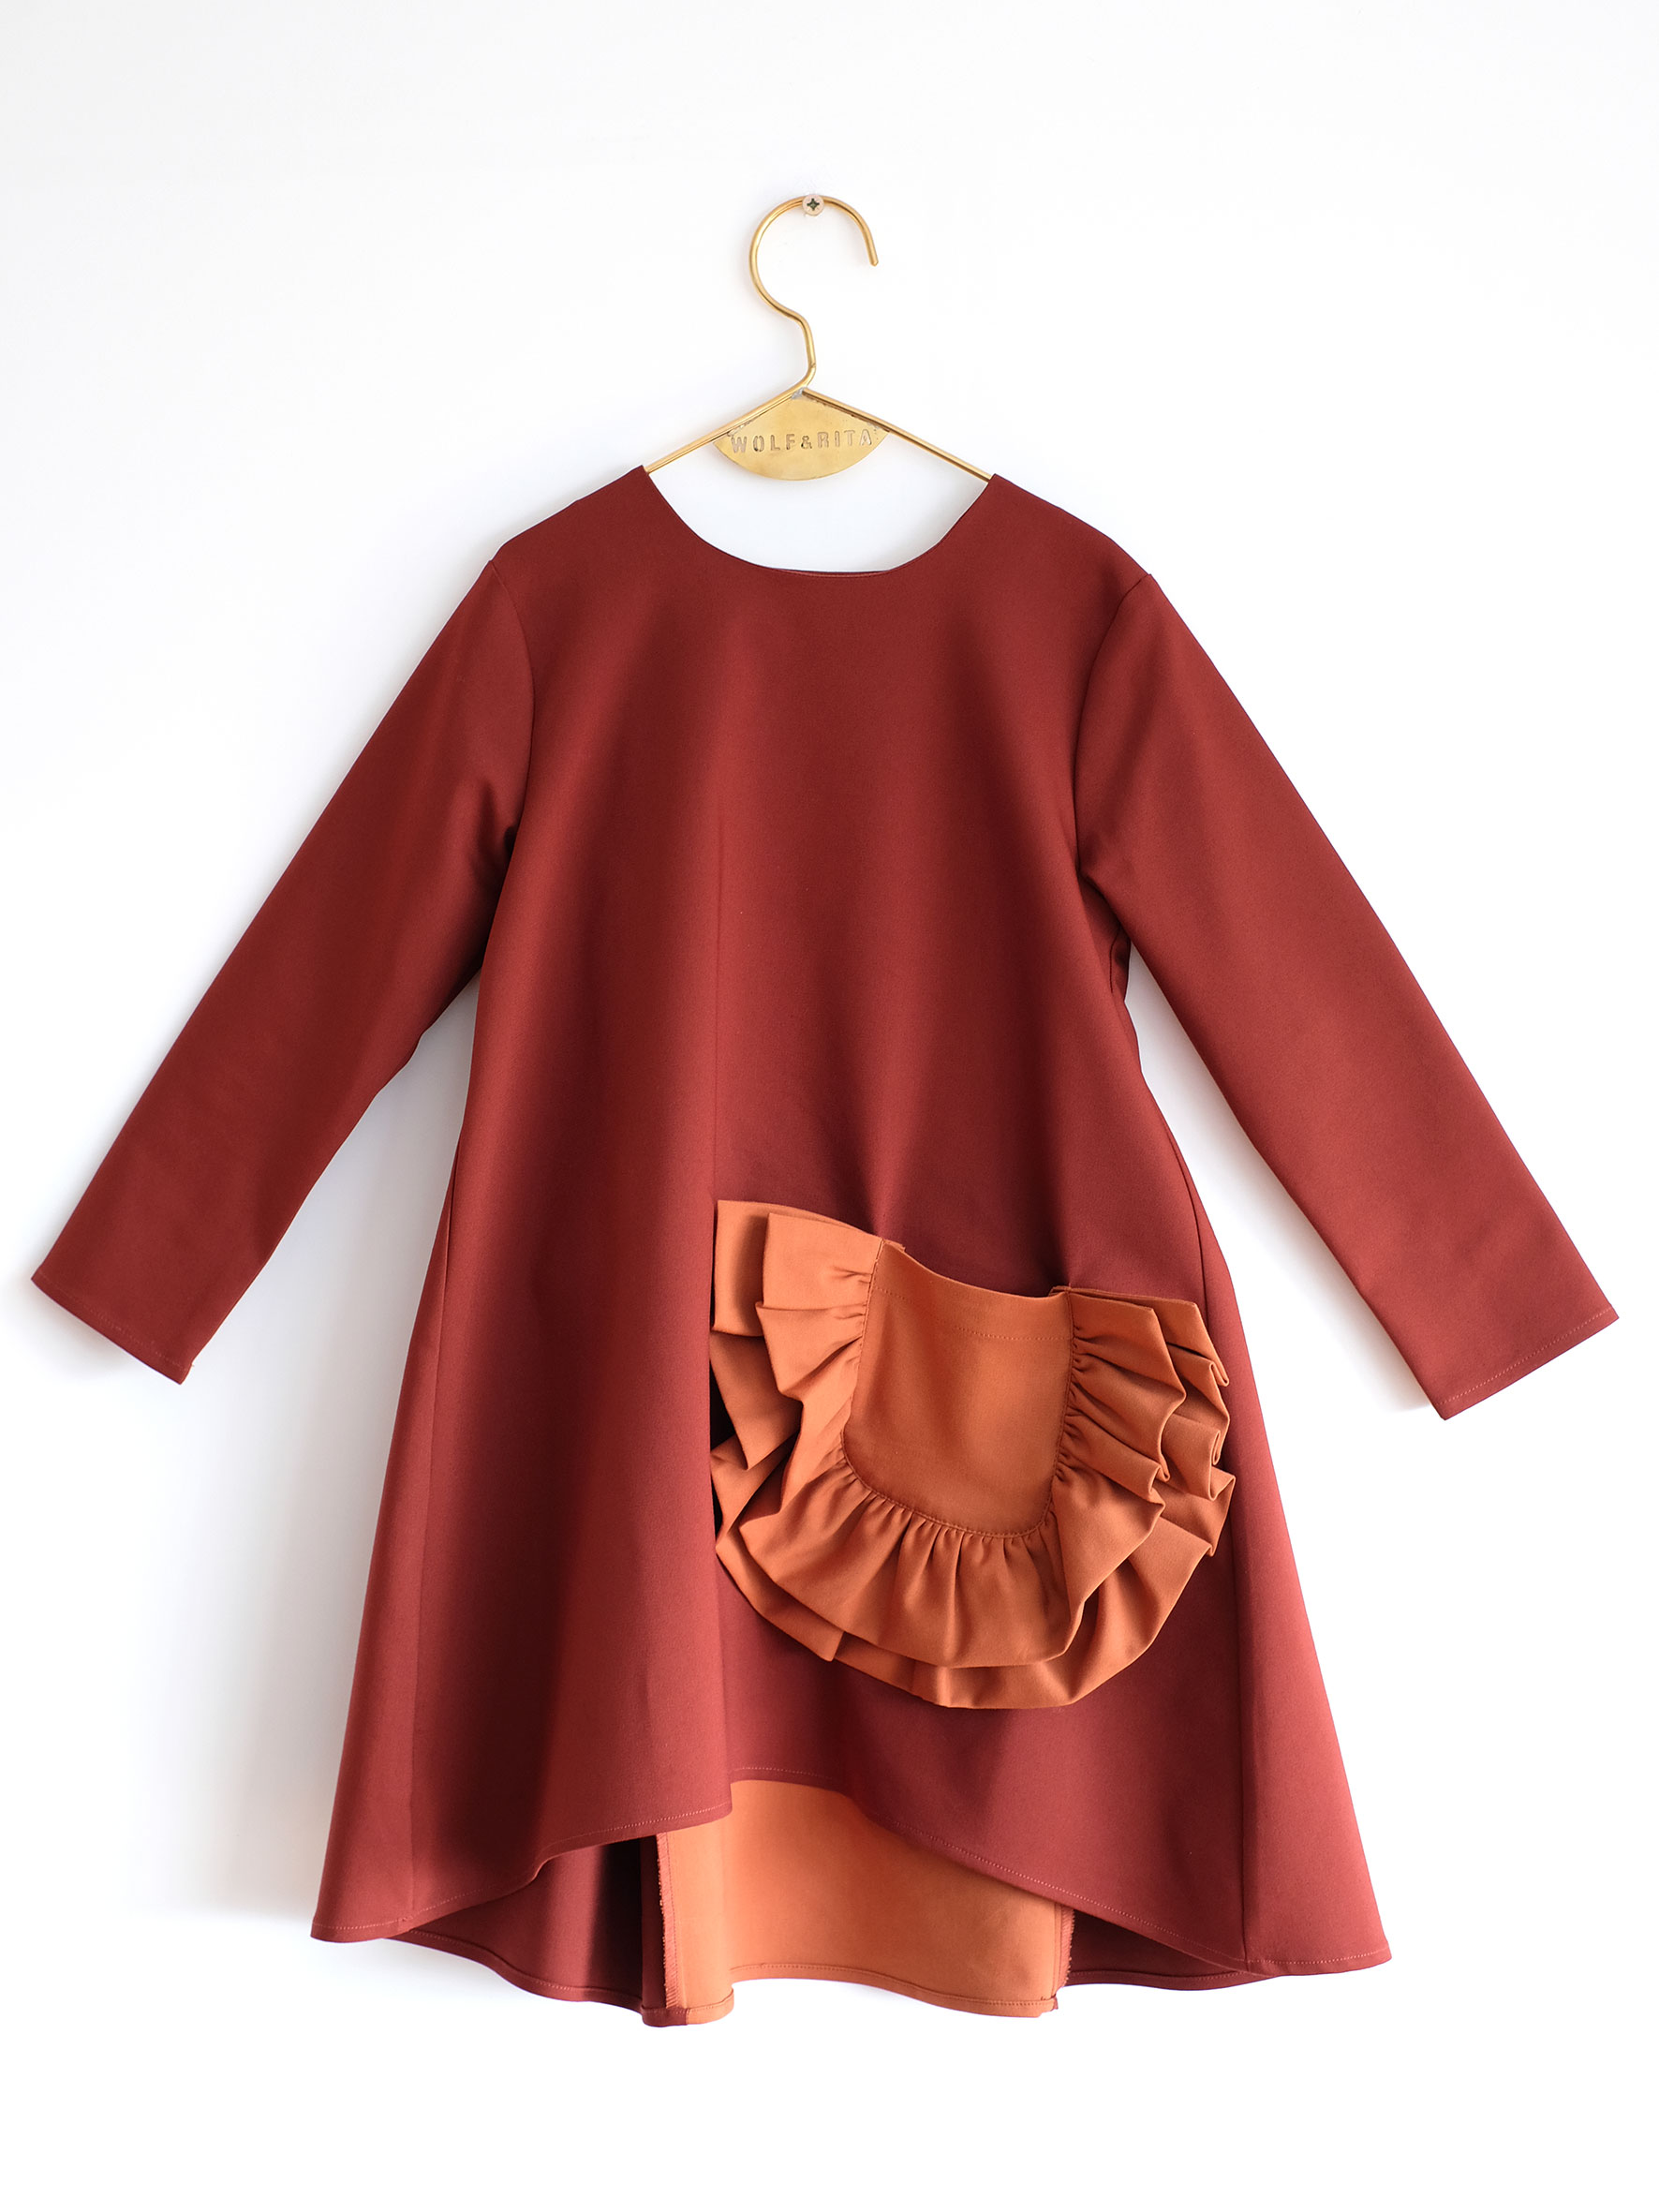 Wolf & Rita Orange - Claudia Bordeaux Dress - Clothing